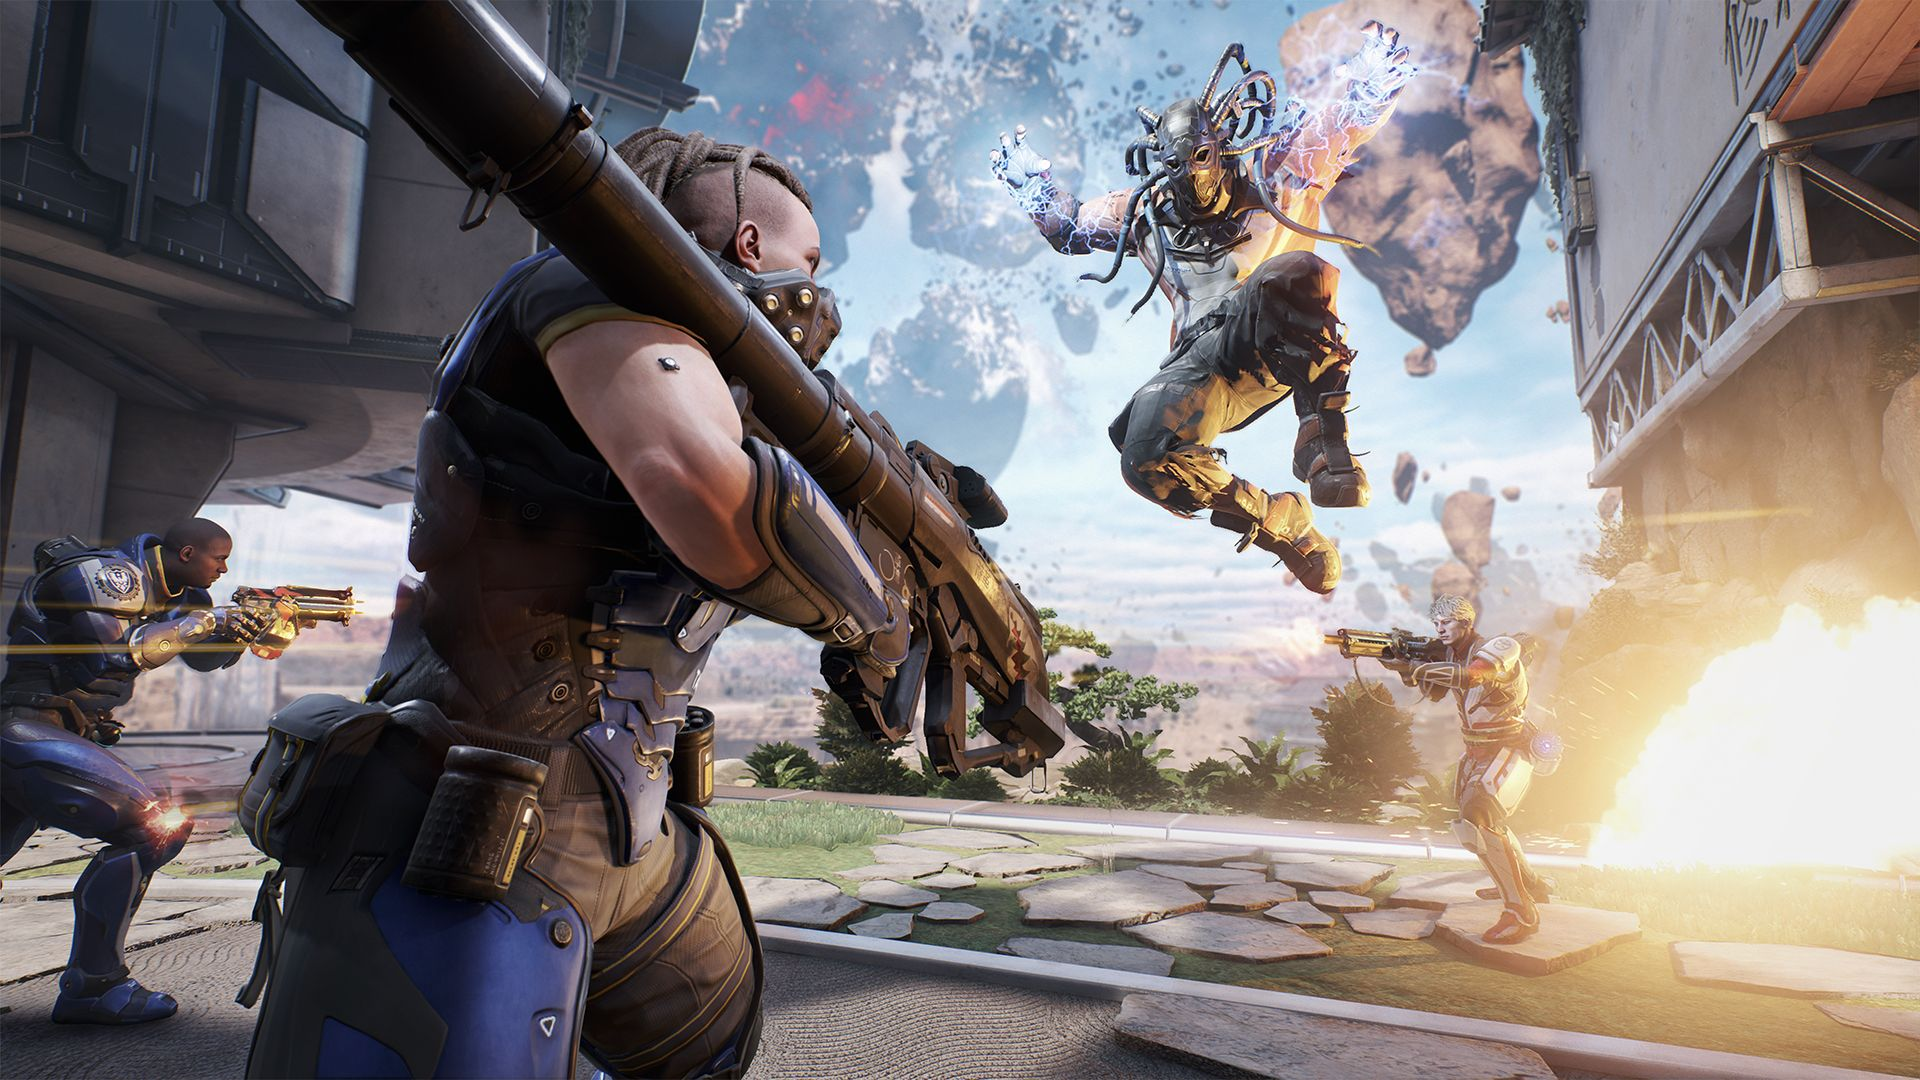 lawbreakers video game desktop wallpaper 61272